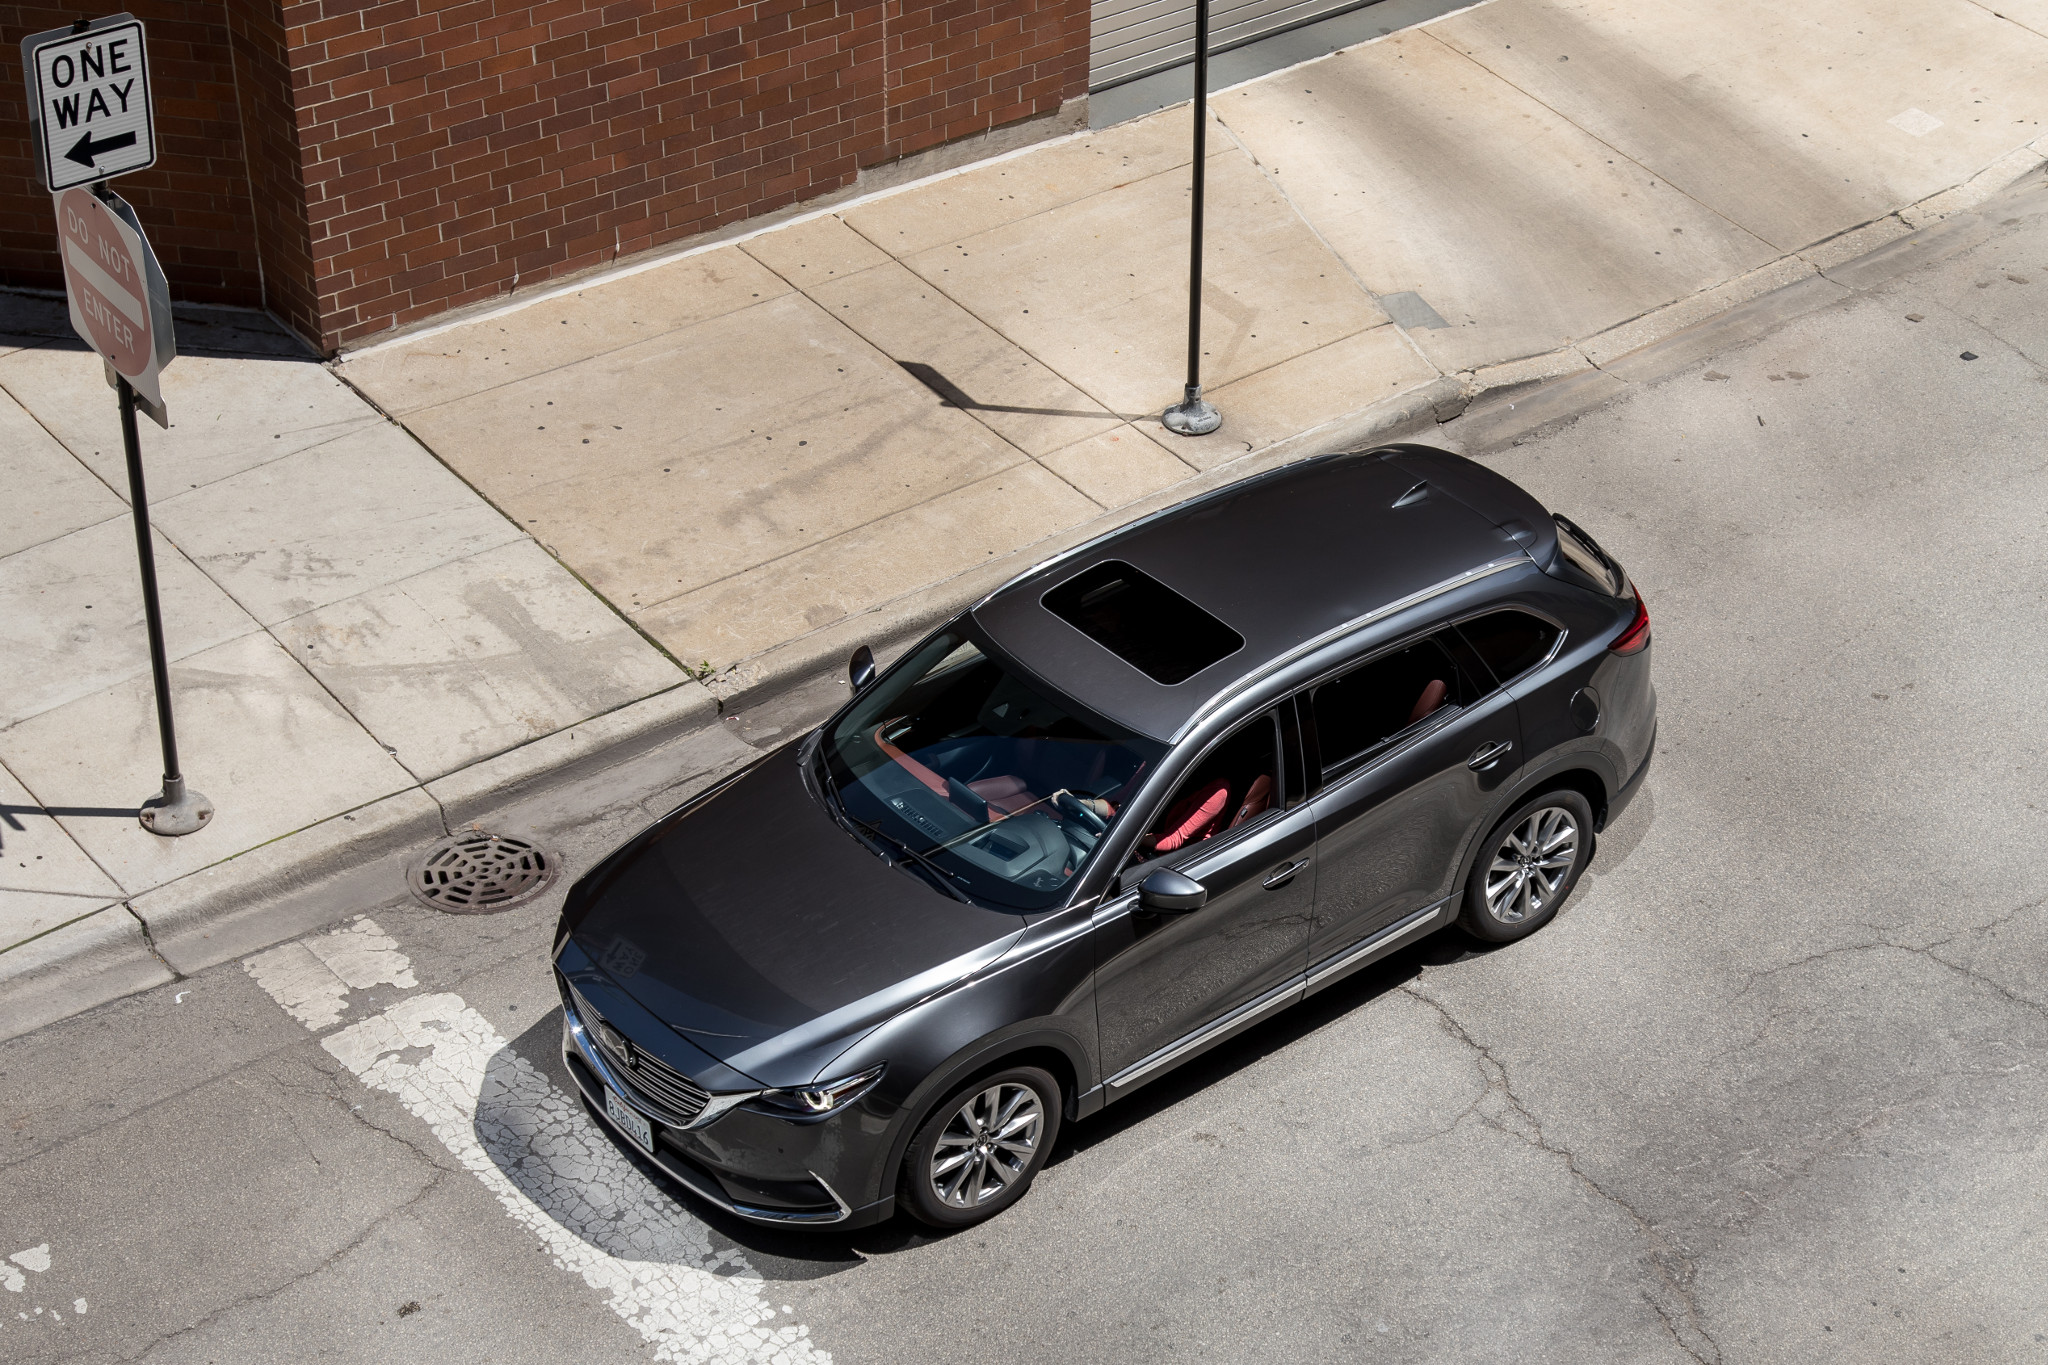 mazda-cx-9-2019-02-angle--exterior--front--grey--overhead.jpg